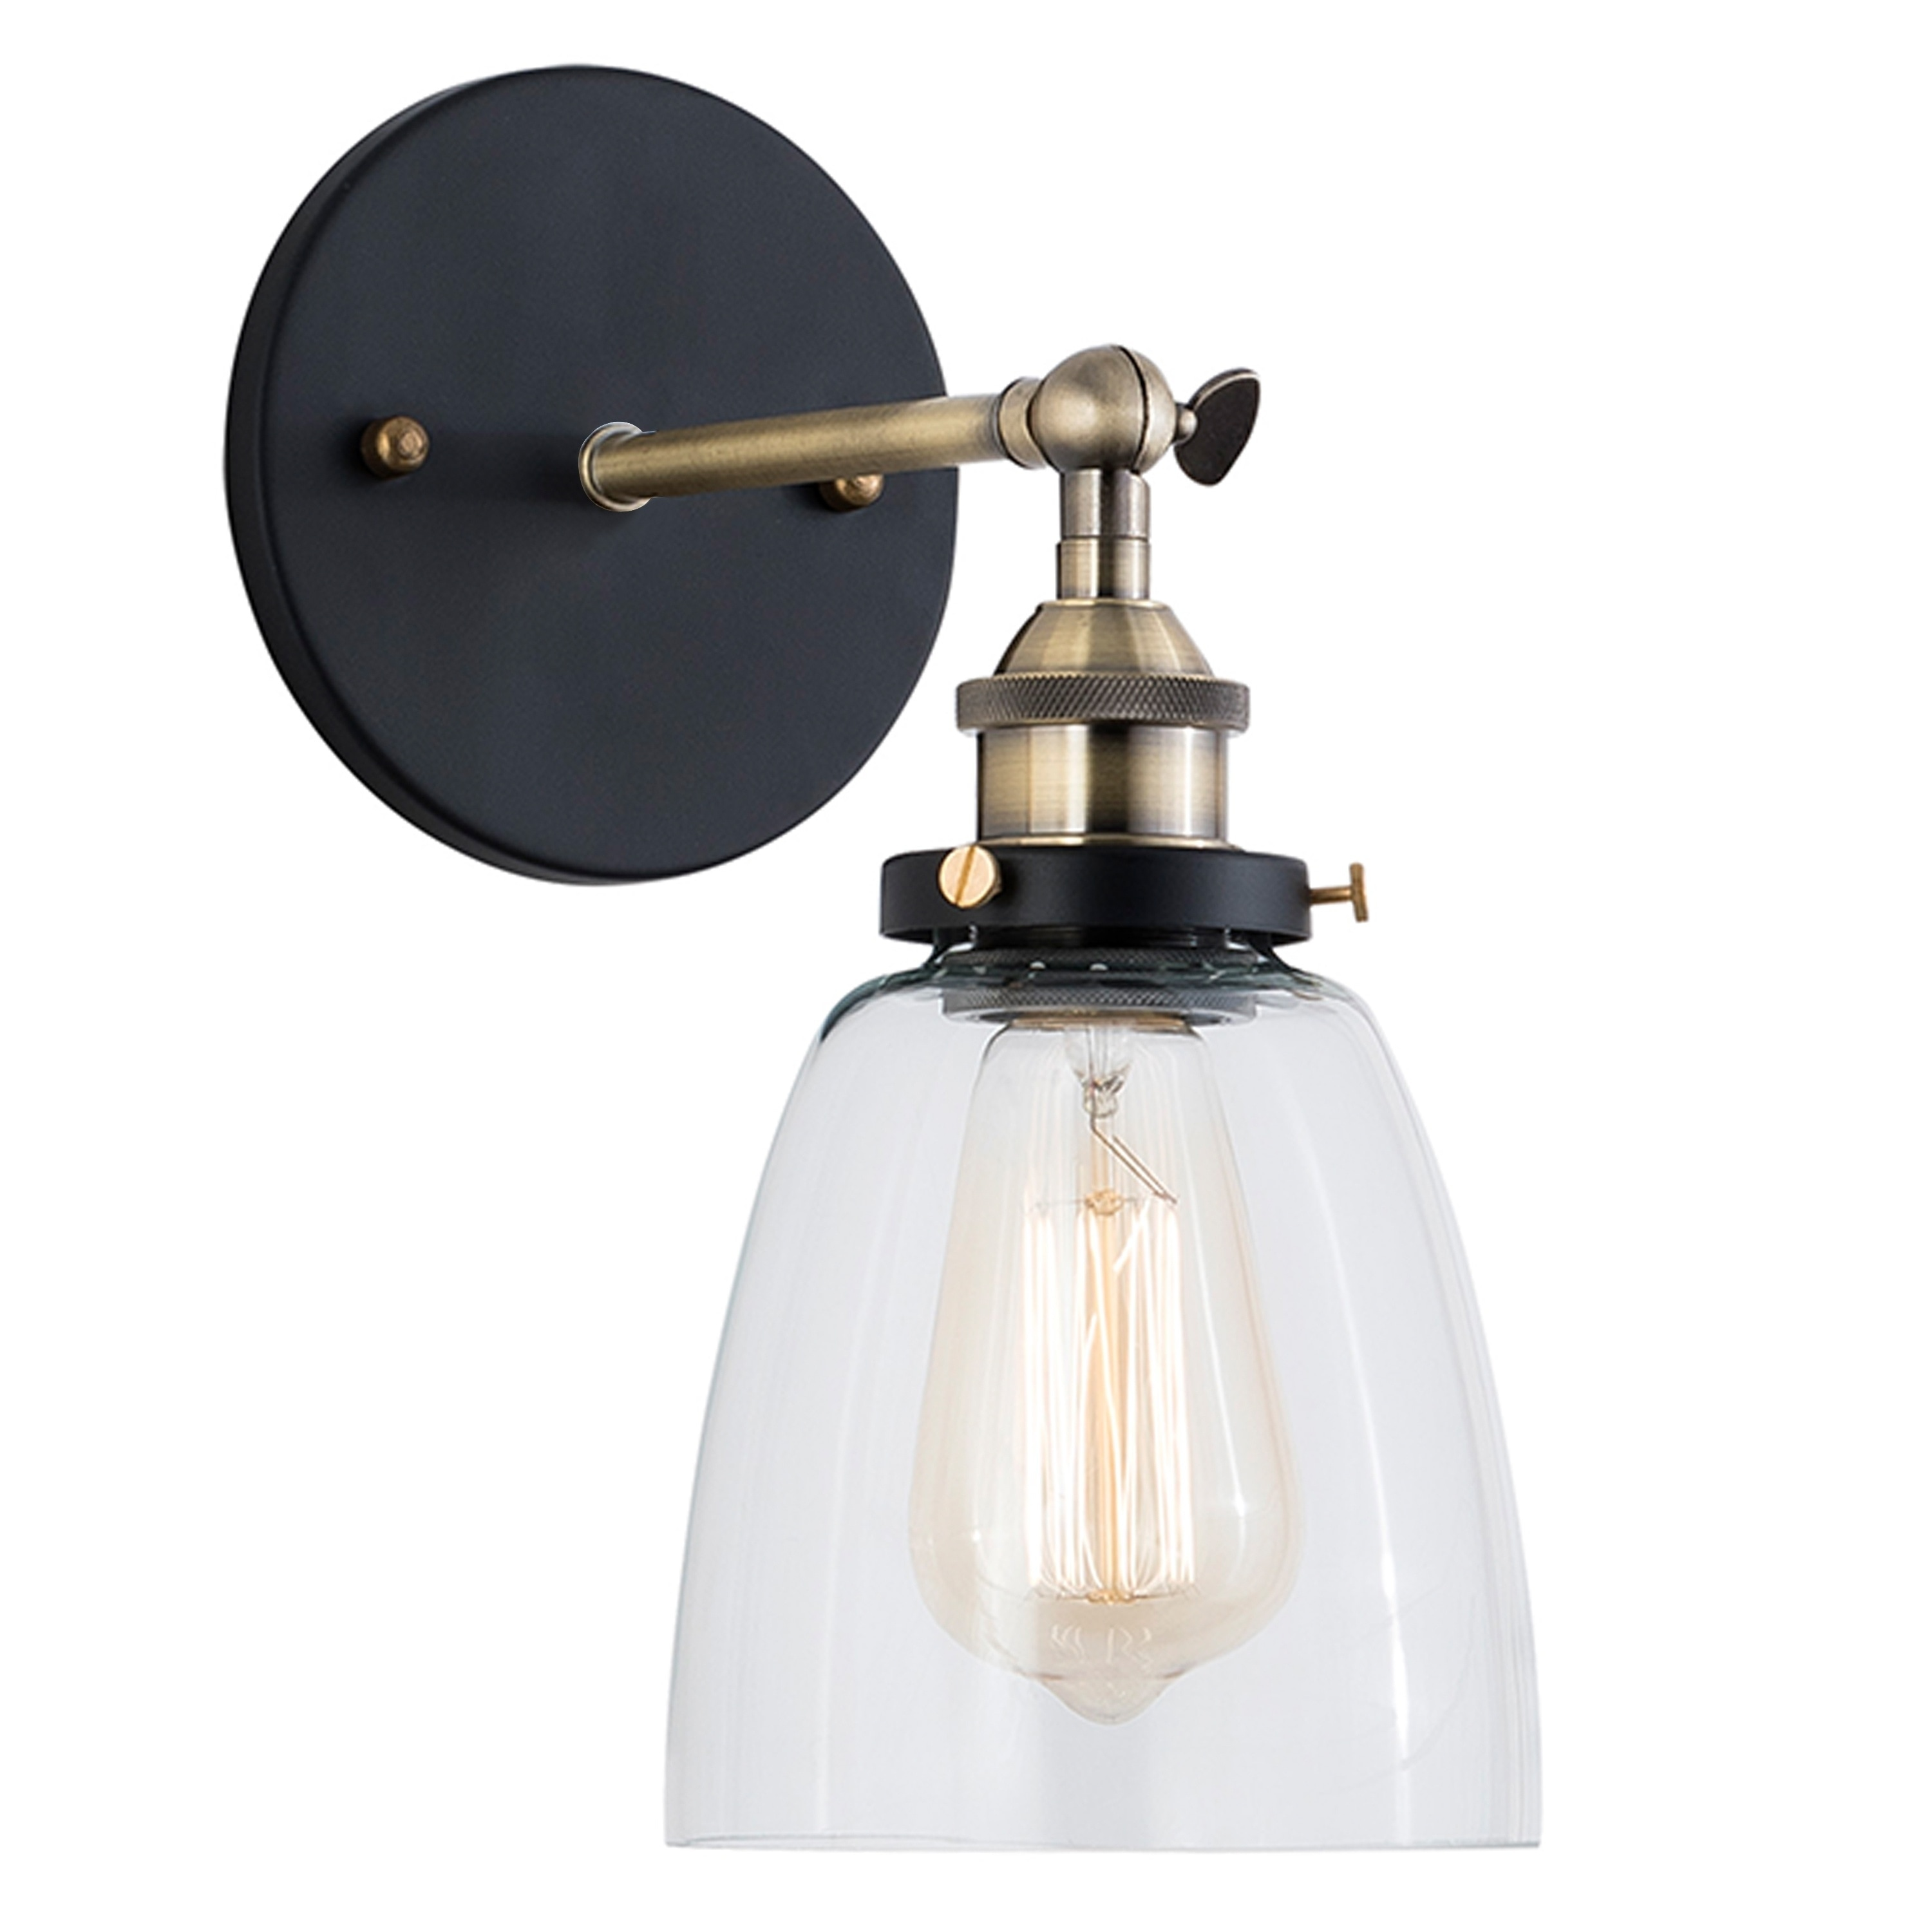 Wall Light LED Dry Rated in Satin Nickel Finish with Frosted Clear Glass Shade